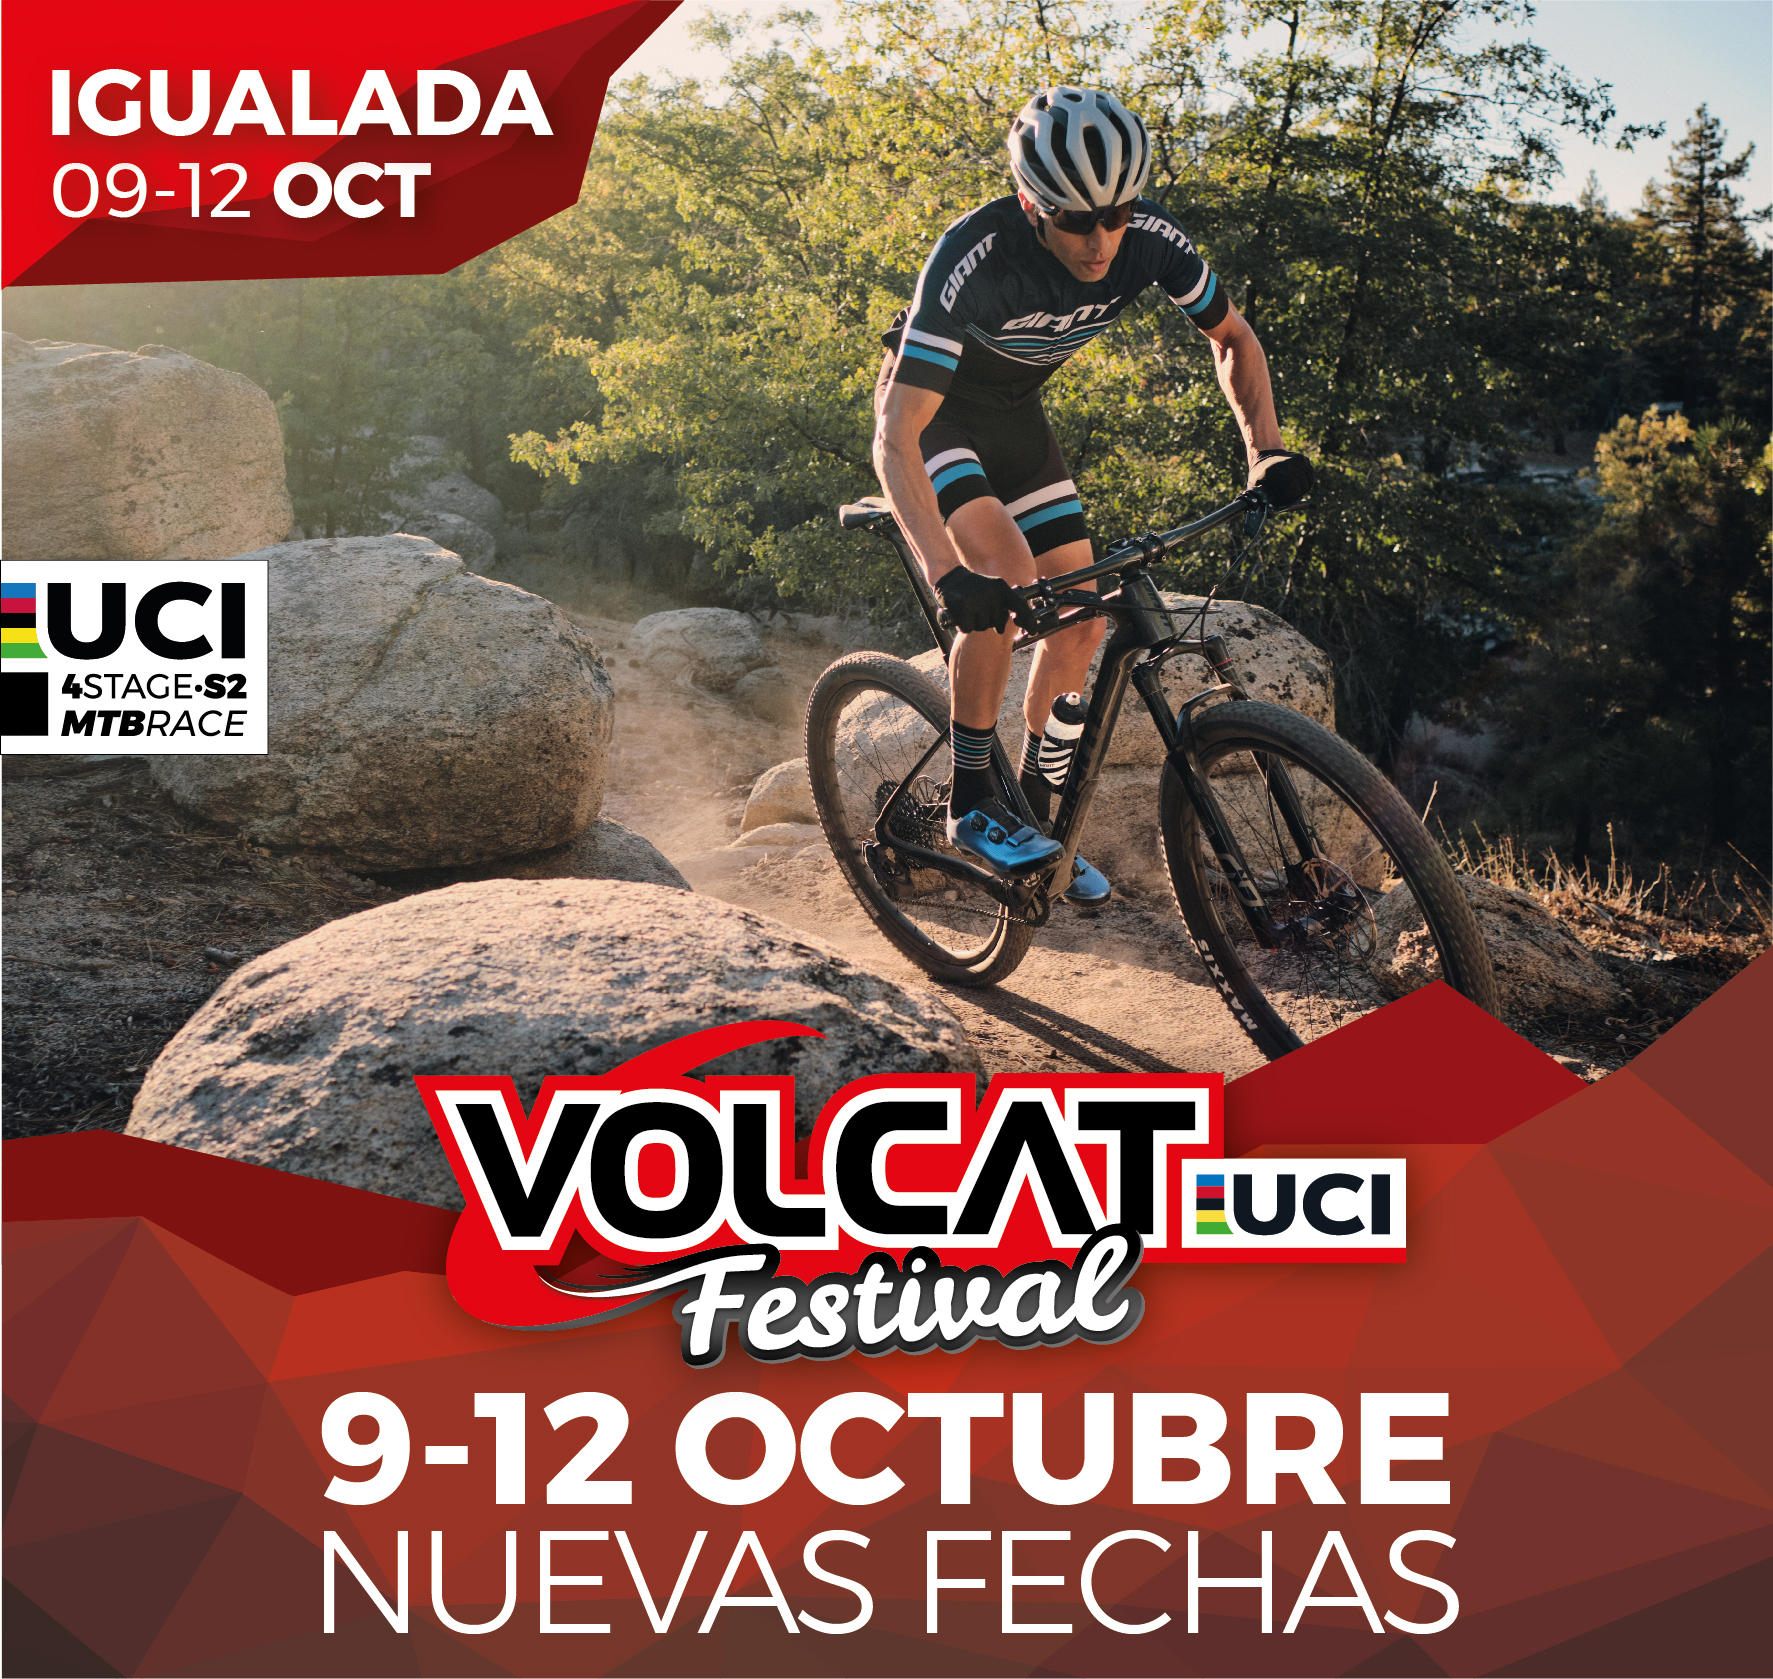 New dates for VolCAT Festival Igualada 2020 on 9, 10, 11 and 12 October